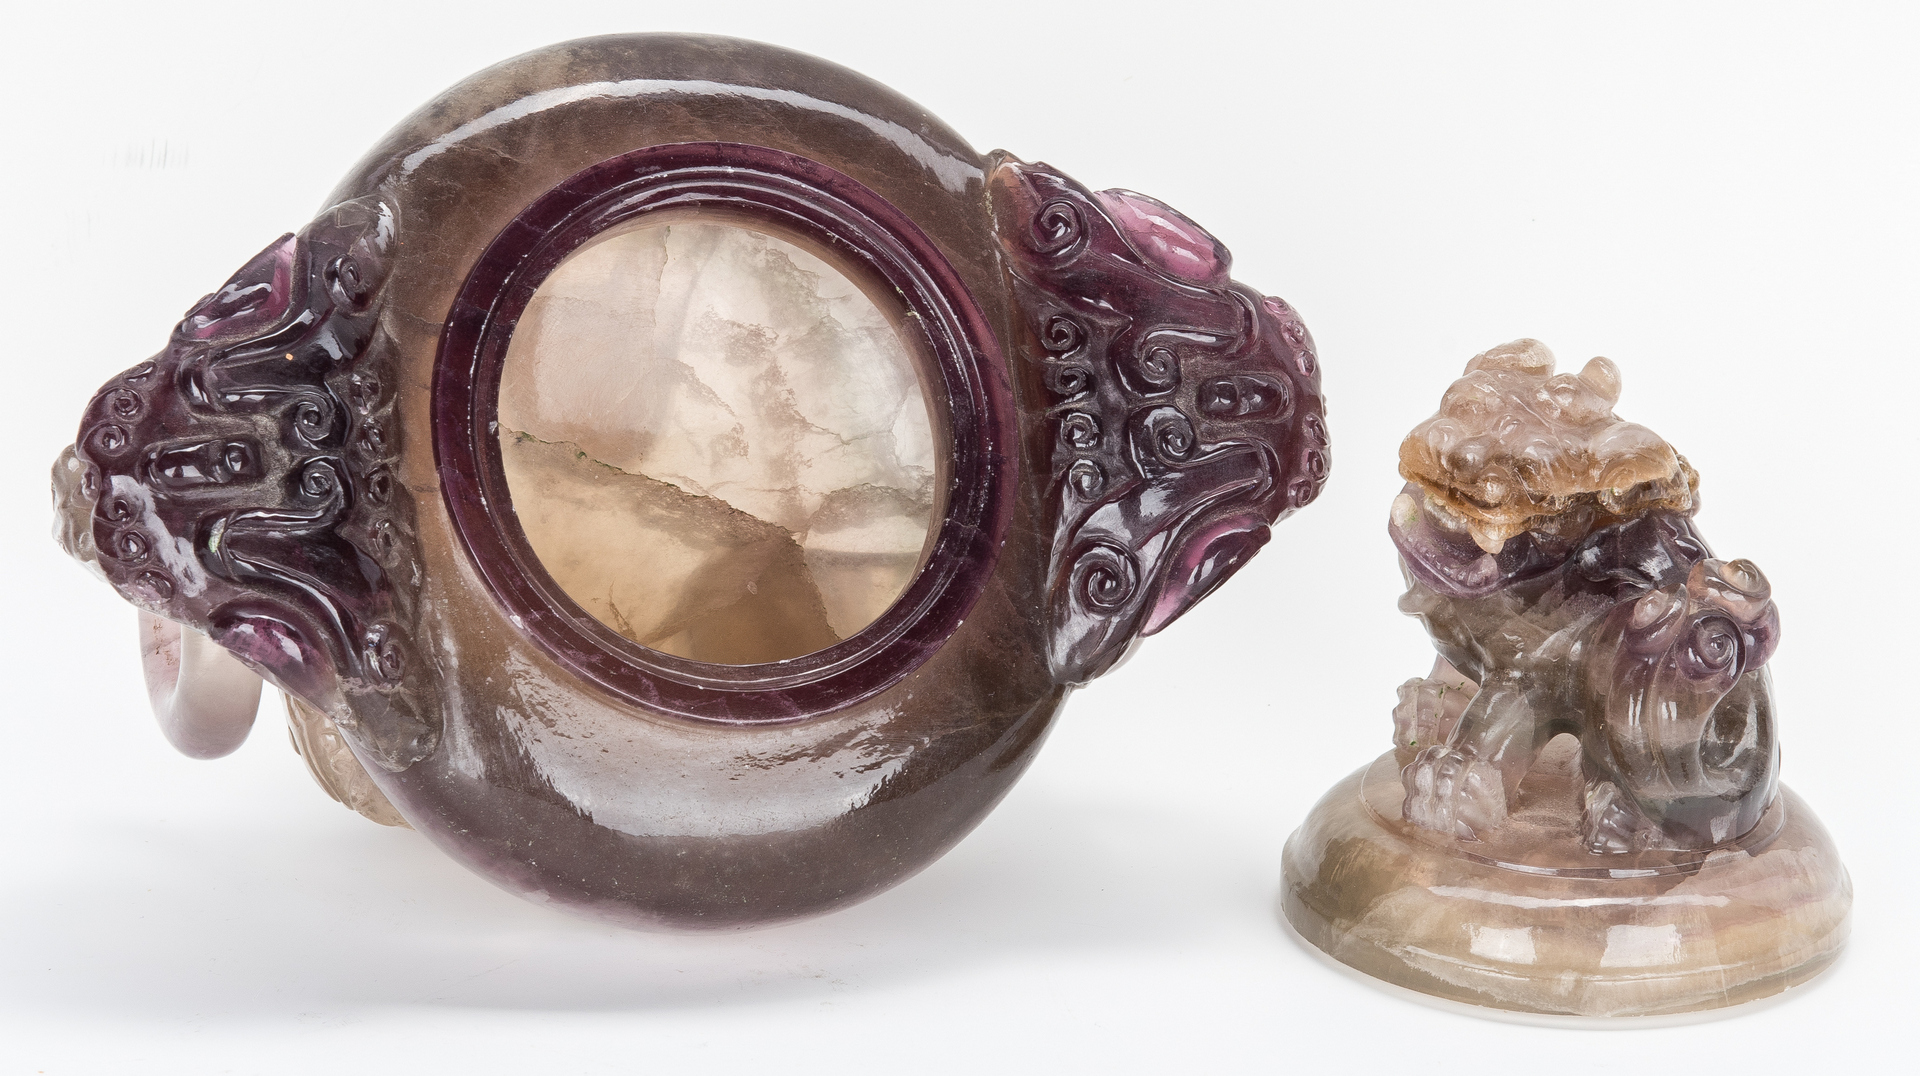 Lot 11: Carved Chinese Agate Censer w/ Foo Dog Finial